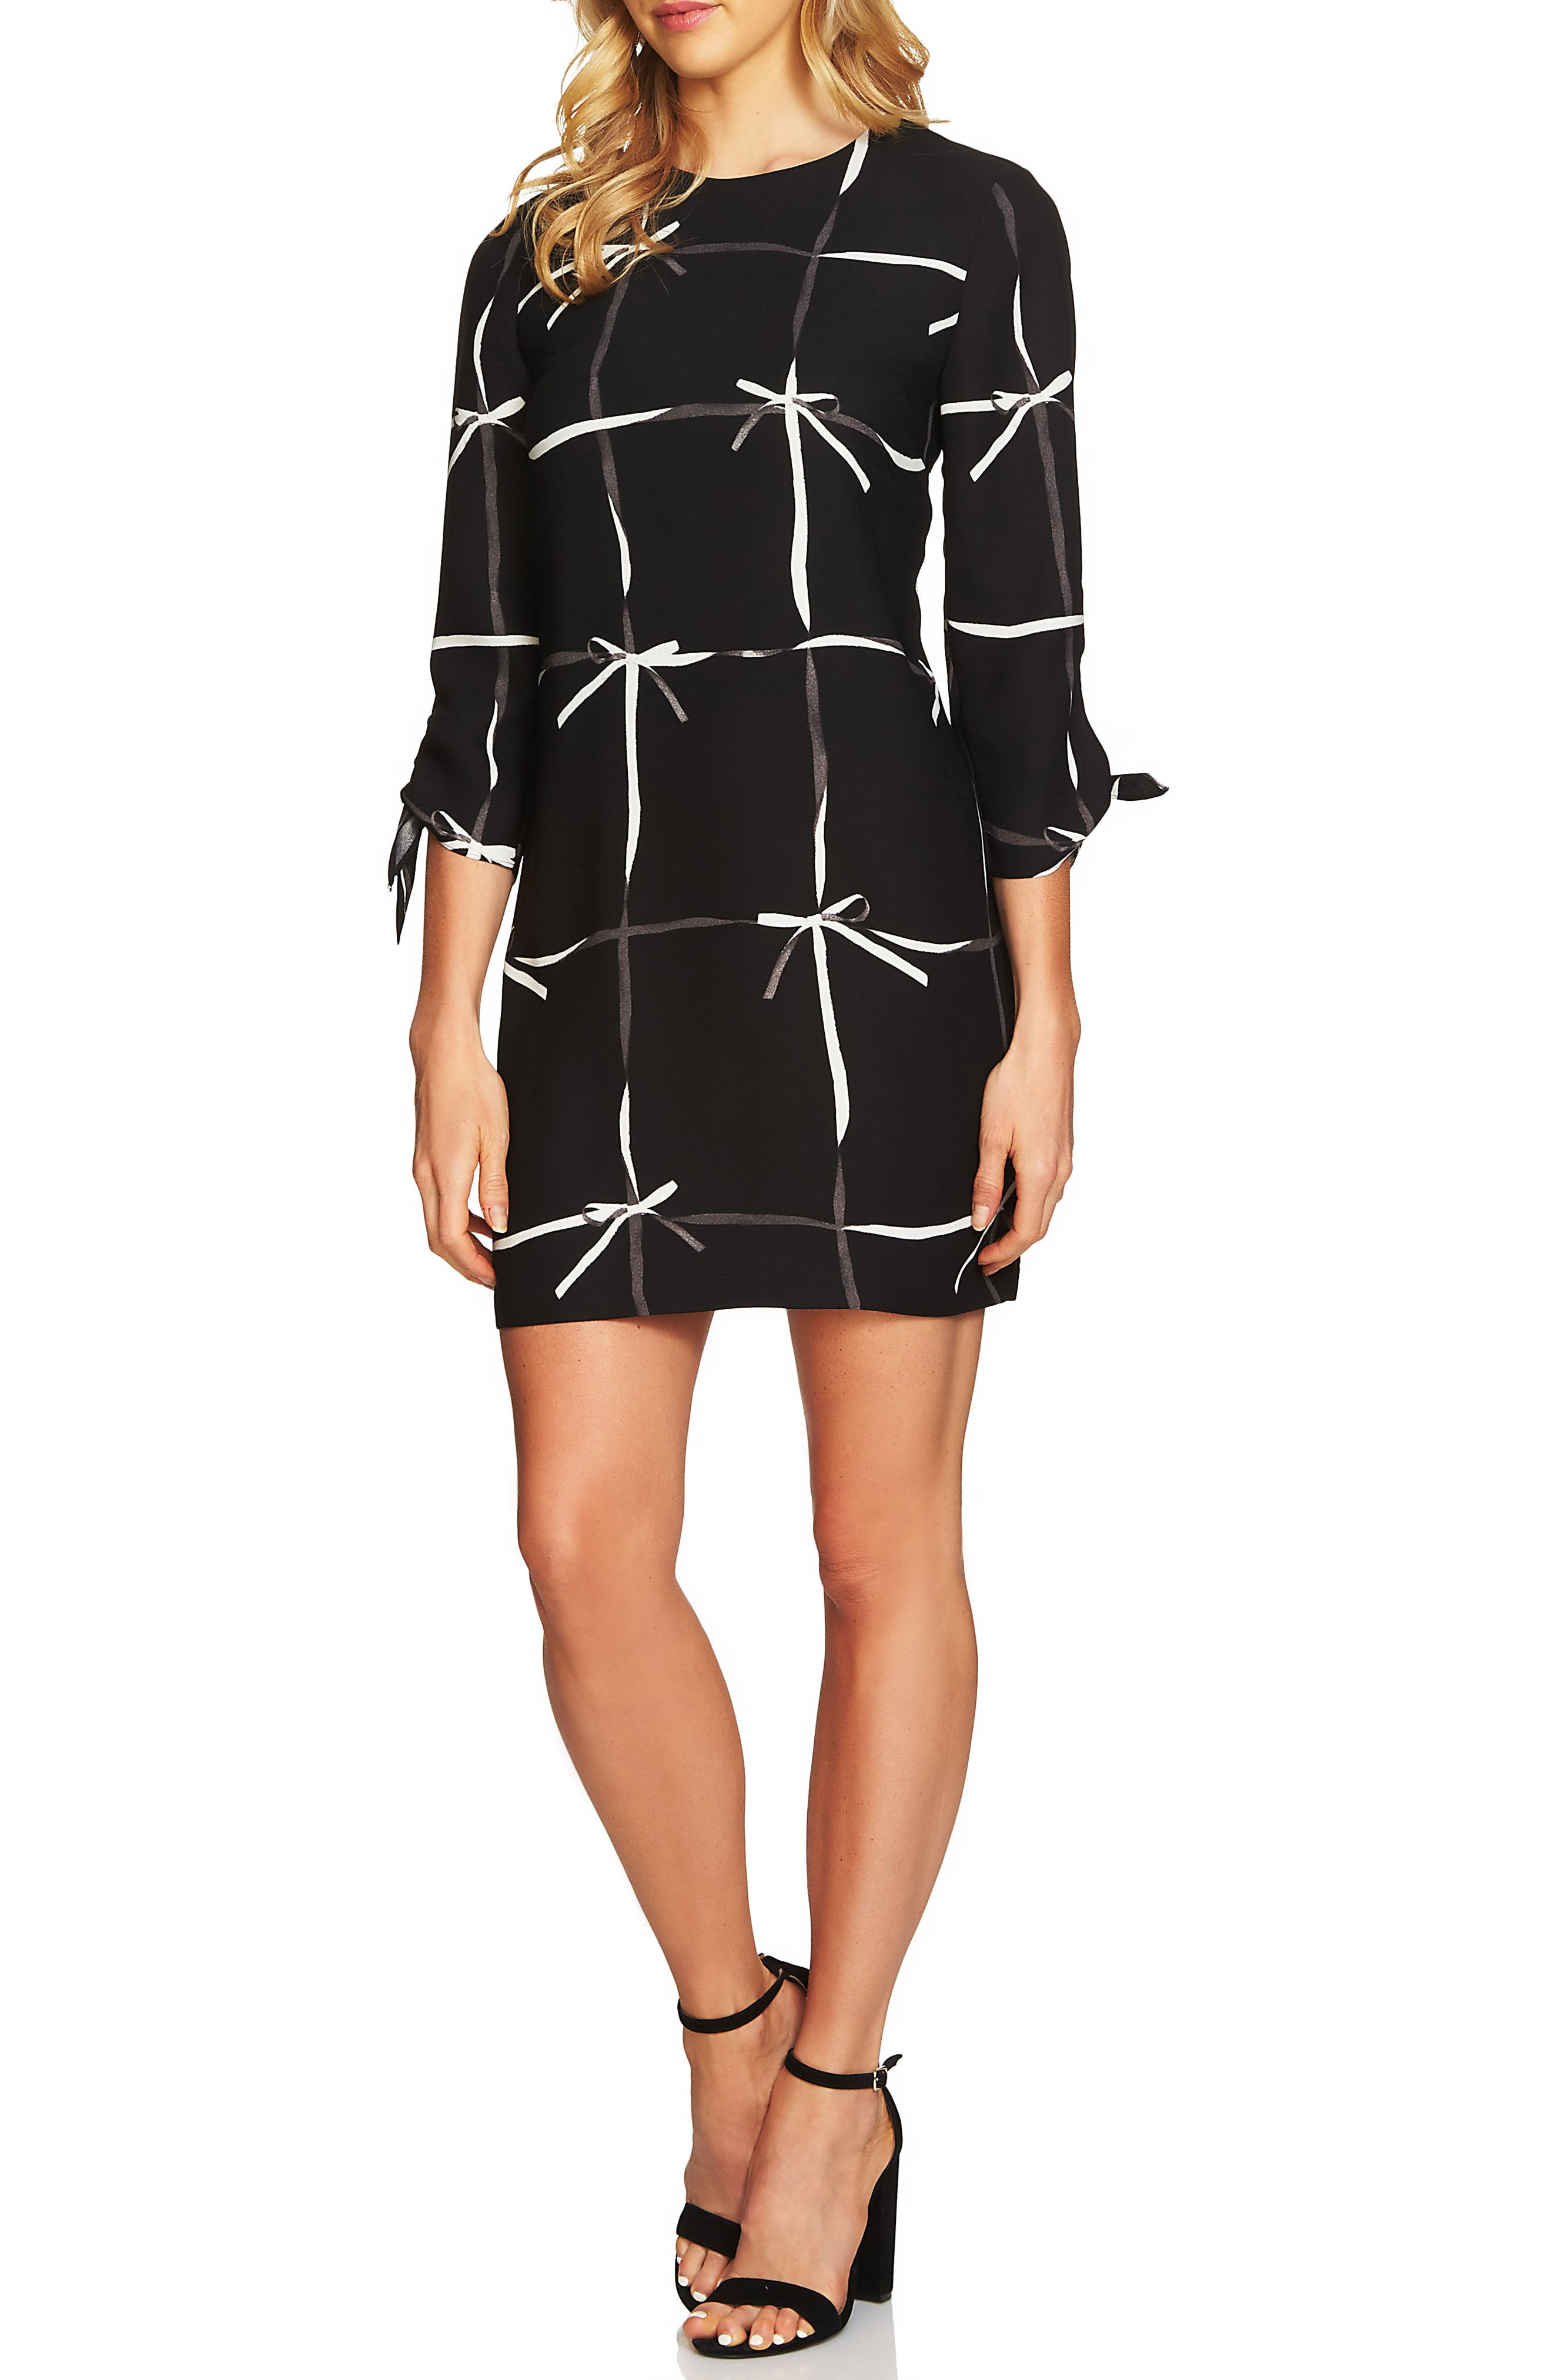 Alternate Image 1 Selected - CeCe Lattice Ribbons Tie Sleeve Dress